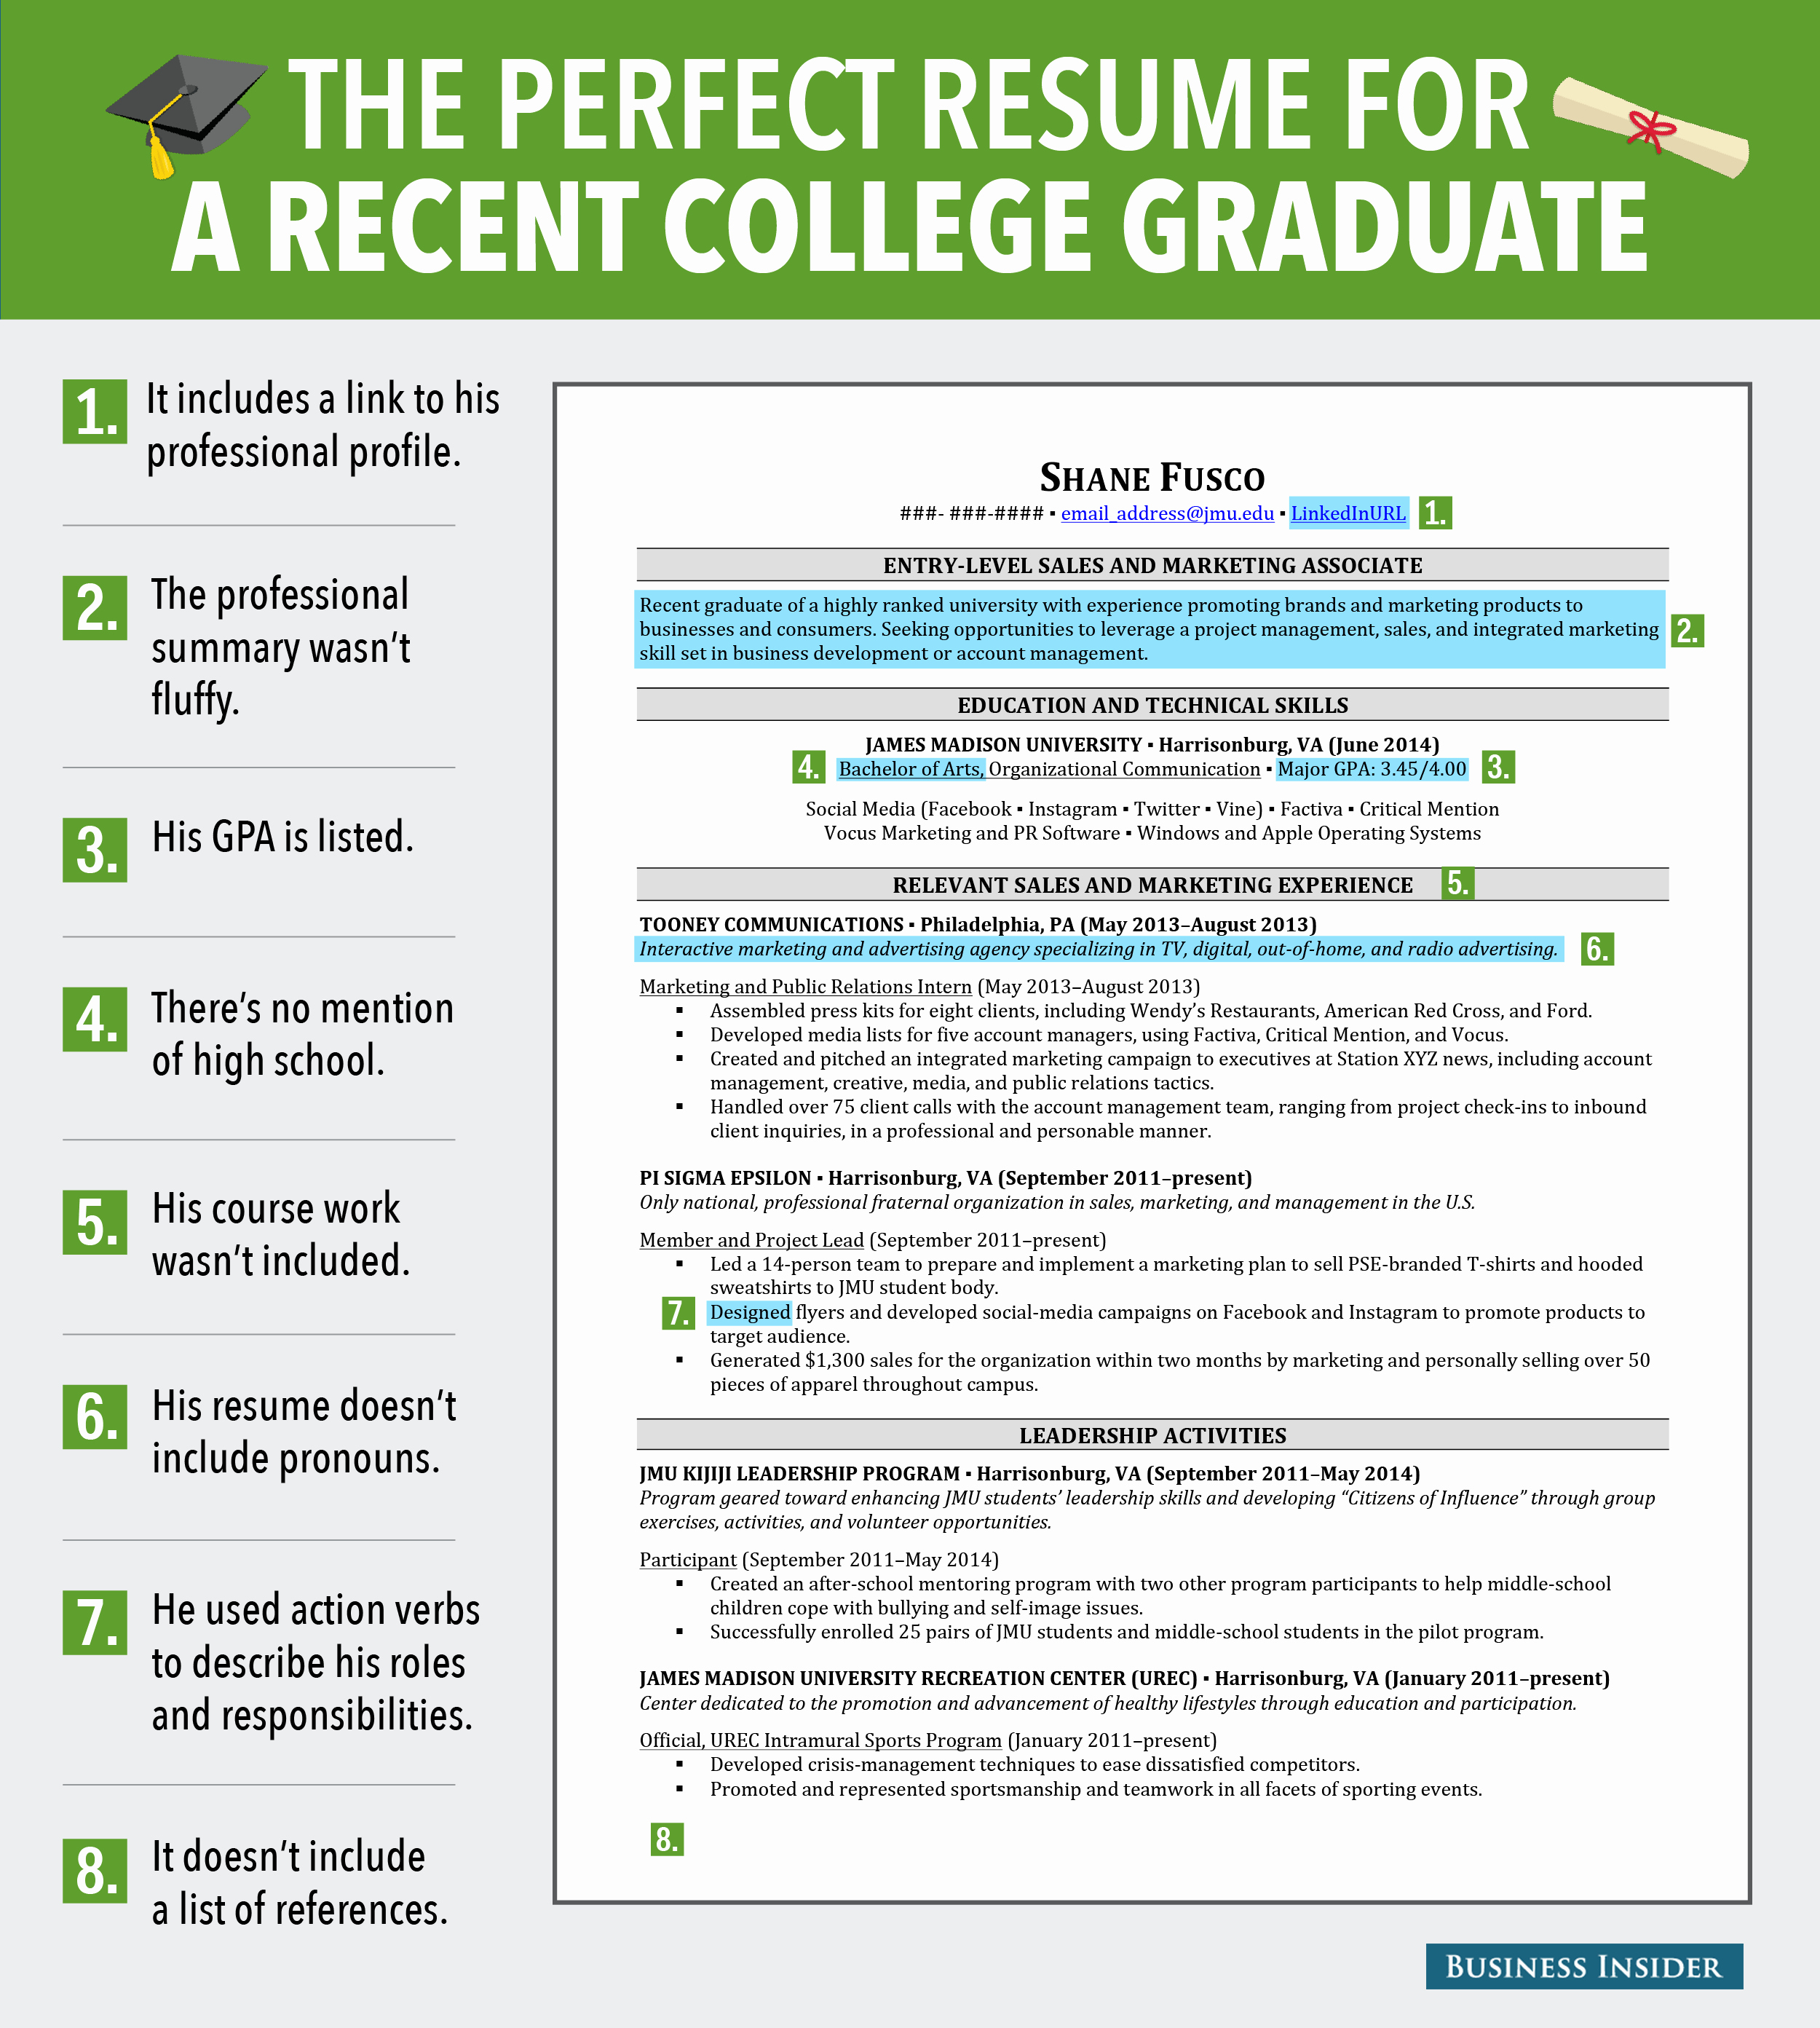 Cv Template Graduate School Best Of 8 Reasons This is An Excellent Resume for A Recent College